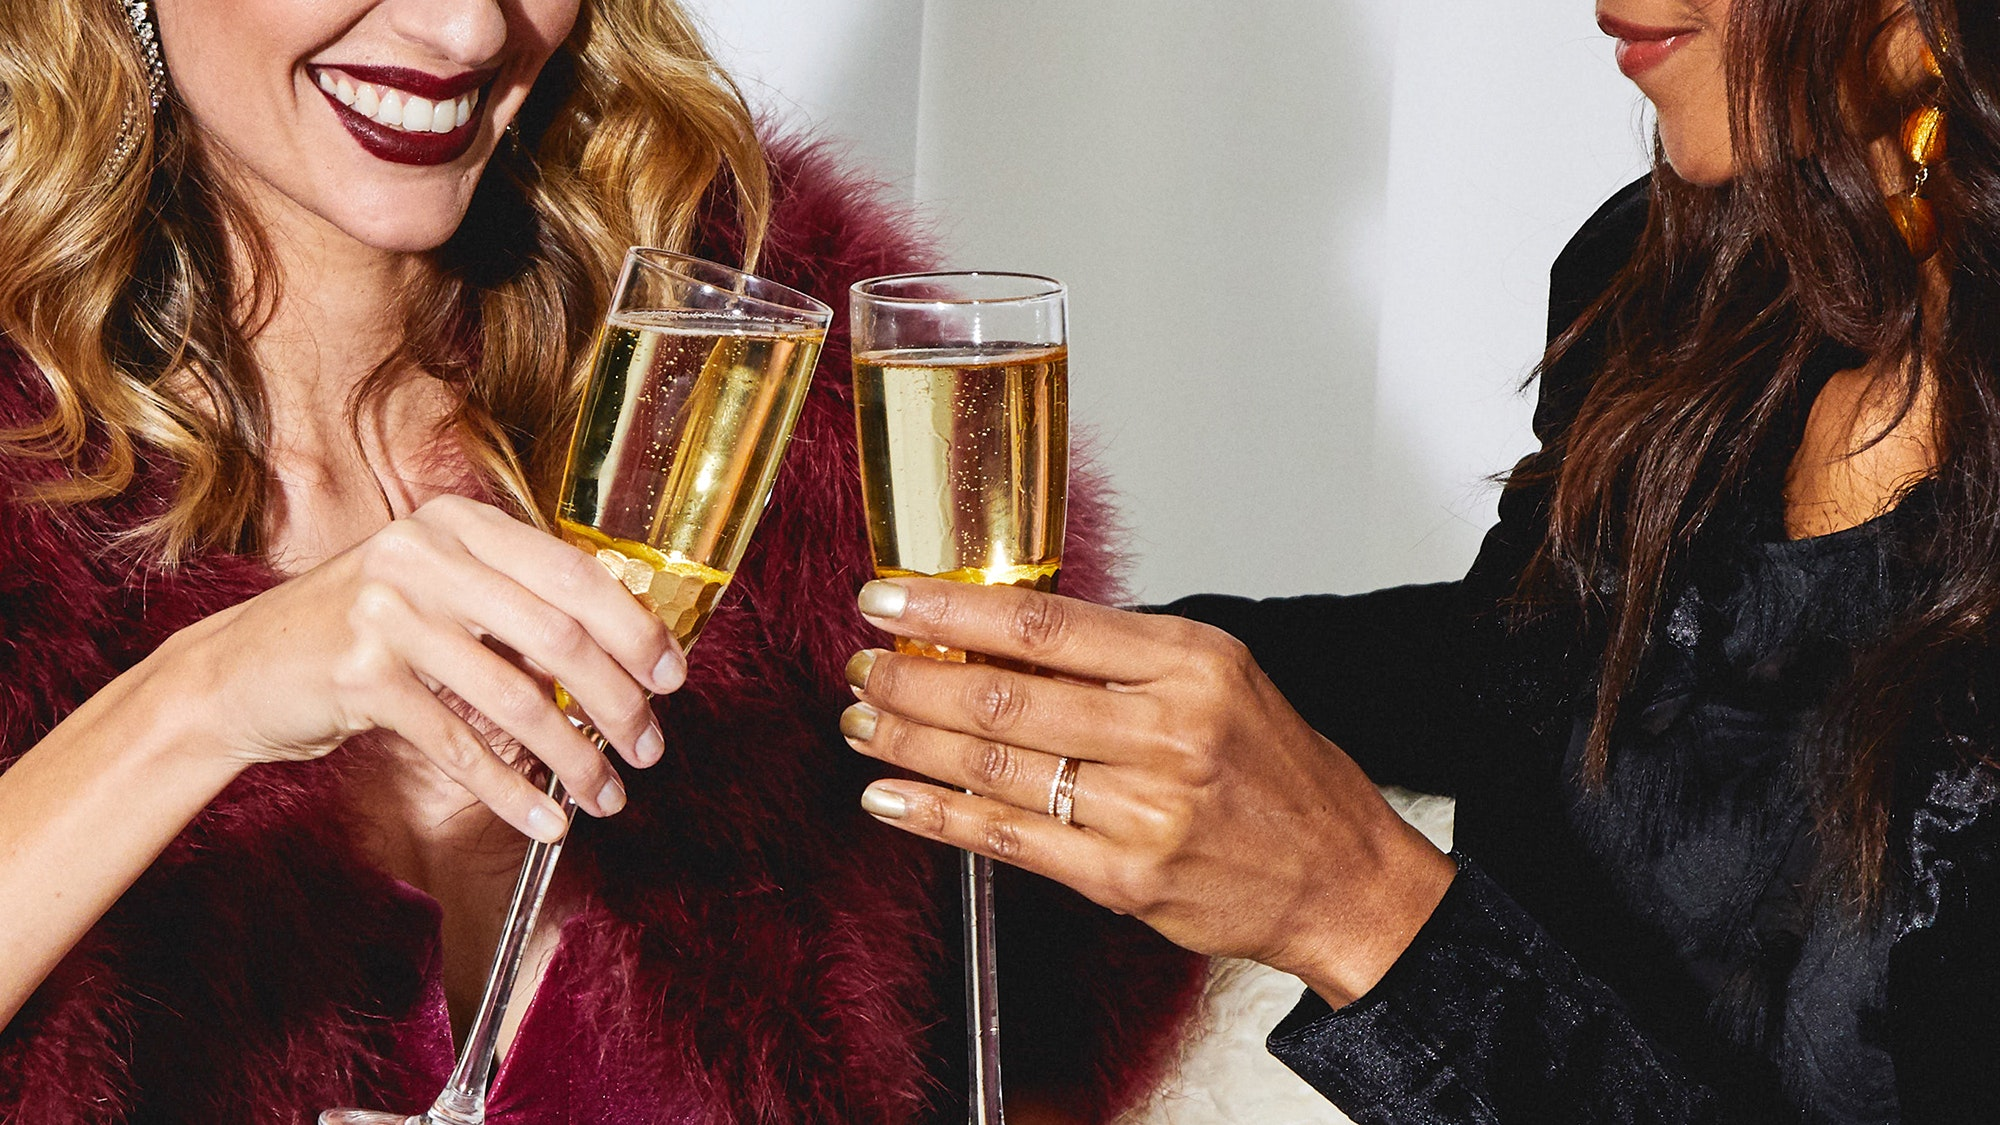 Break Out the Bubbly! Champagne Has Surprising Beauty Benefits for Your Skin and Hair